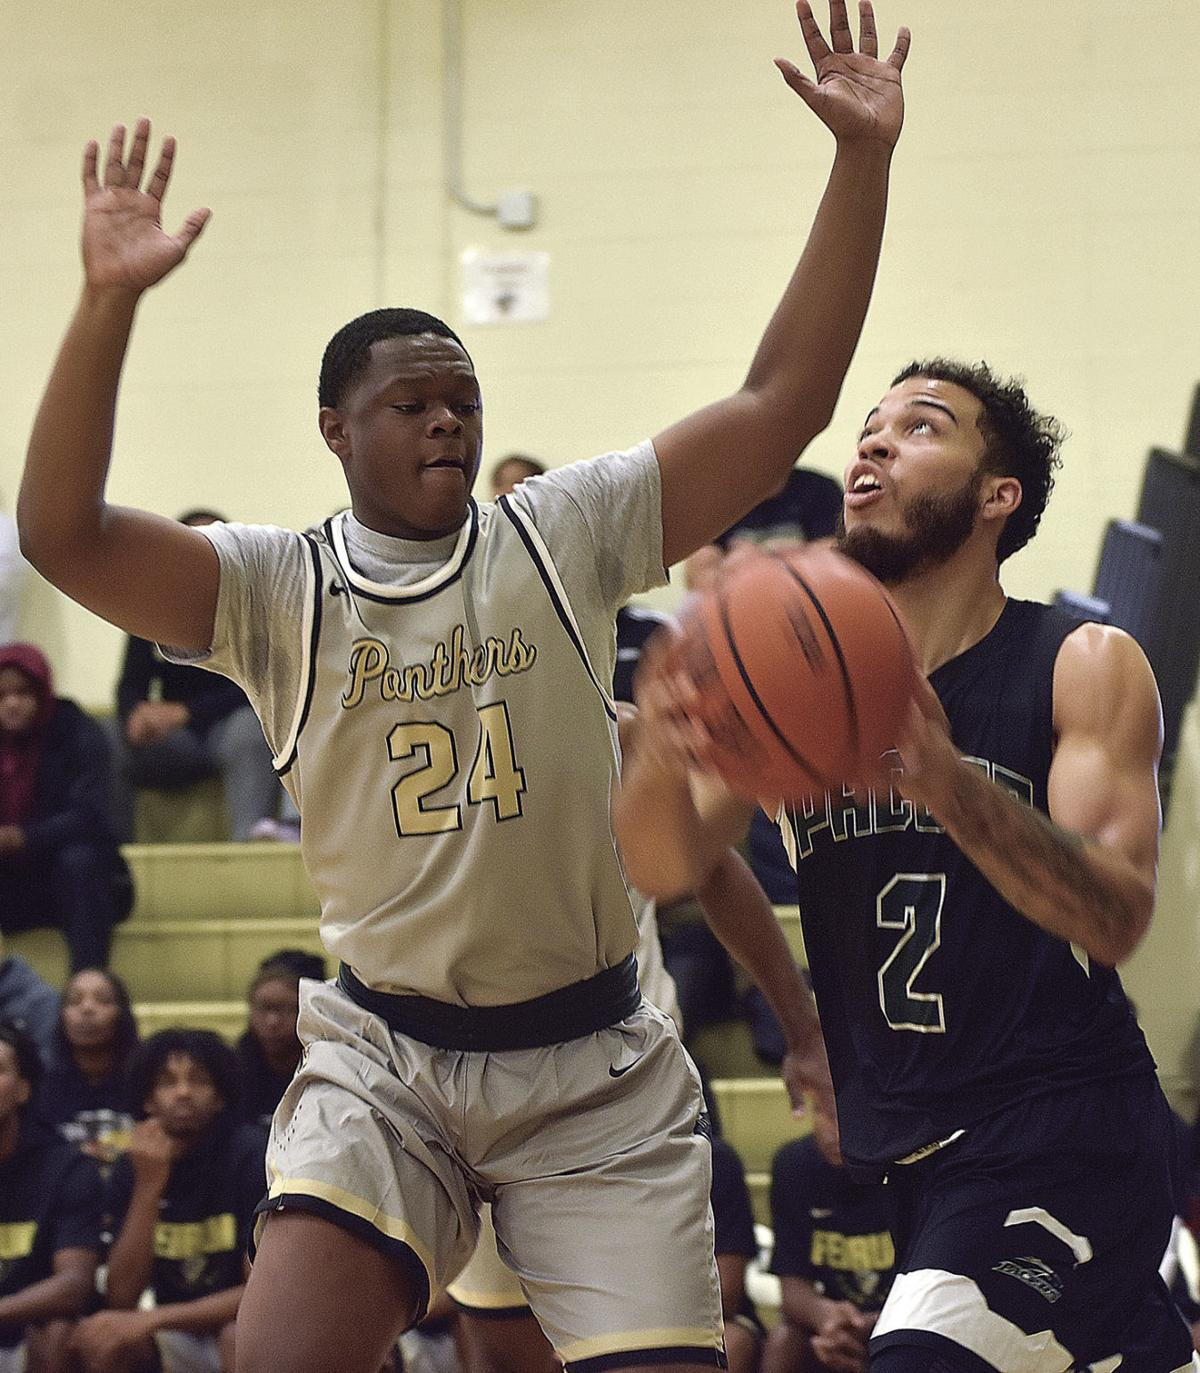 Panthers fail to hook Marlins in ODAC opener